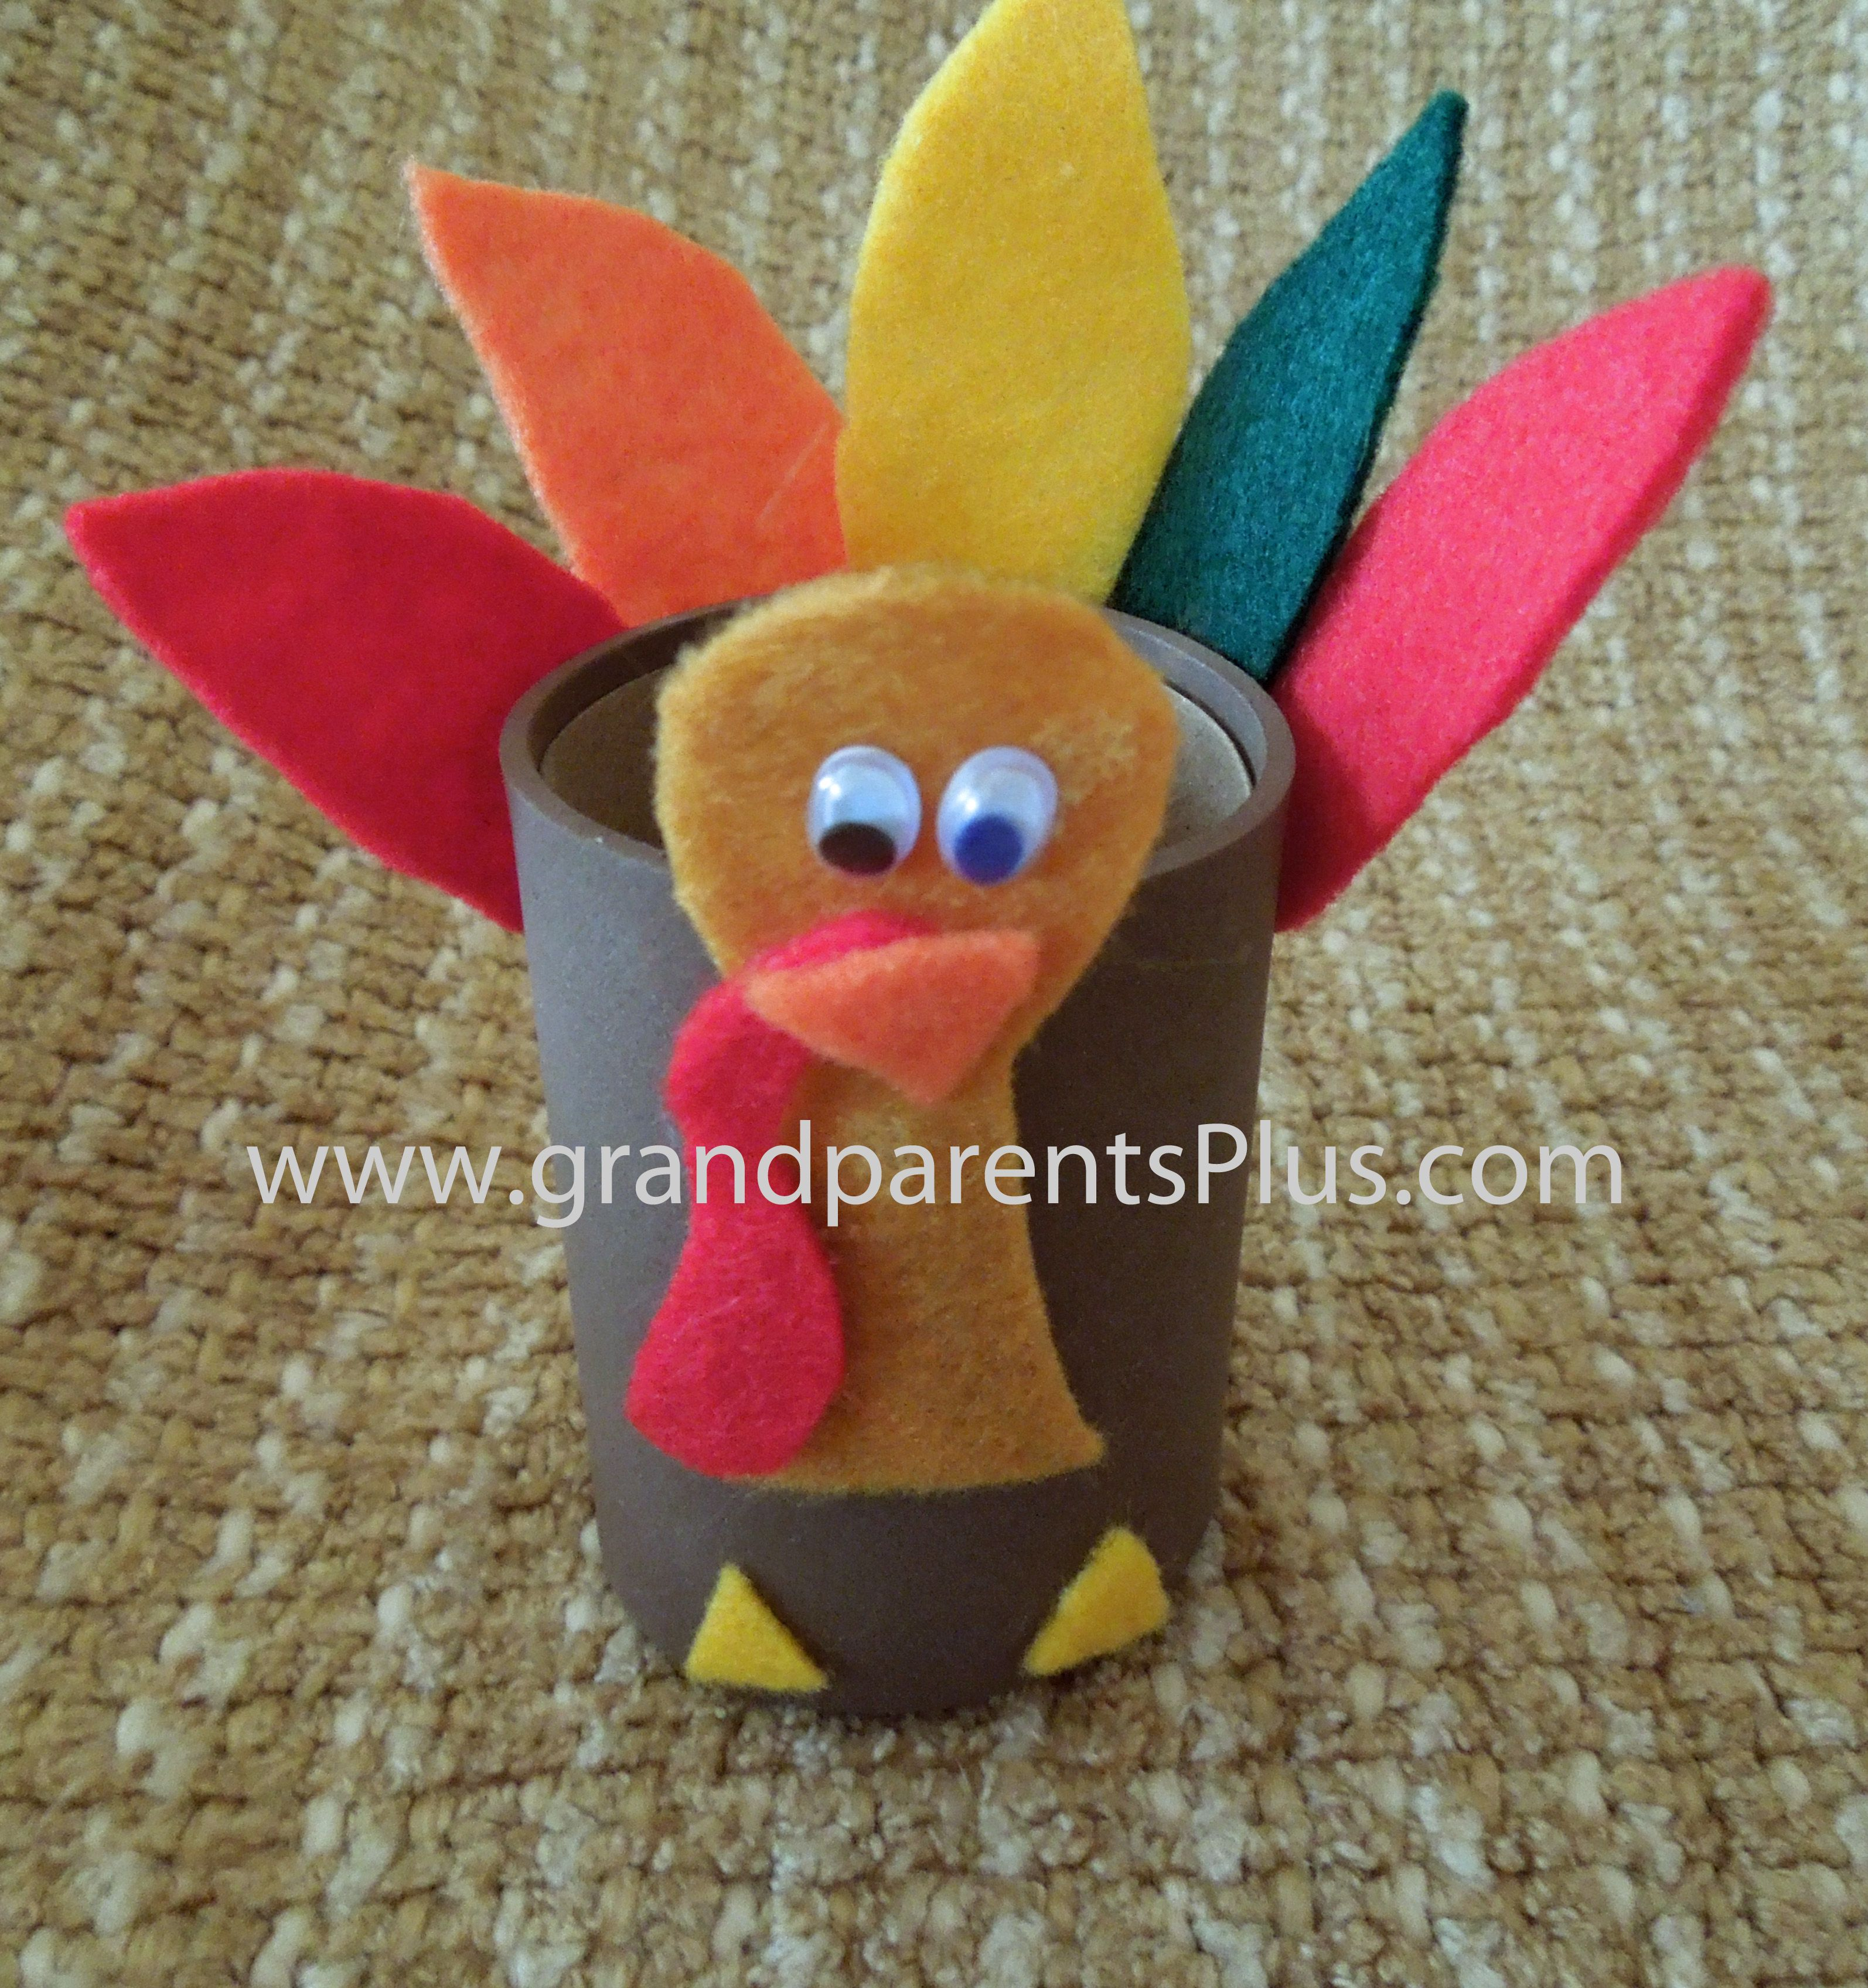 Turkey toilet paper roll craft or favor thanksgiving and craft inexpensive cute easy fun thanksgiving favor fill with candy and nuts thanksgiving favorsthanksgiving centerpiecesthanksgiving turkeytoilet paper roll jeuxipadfo Images